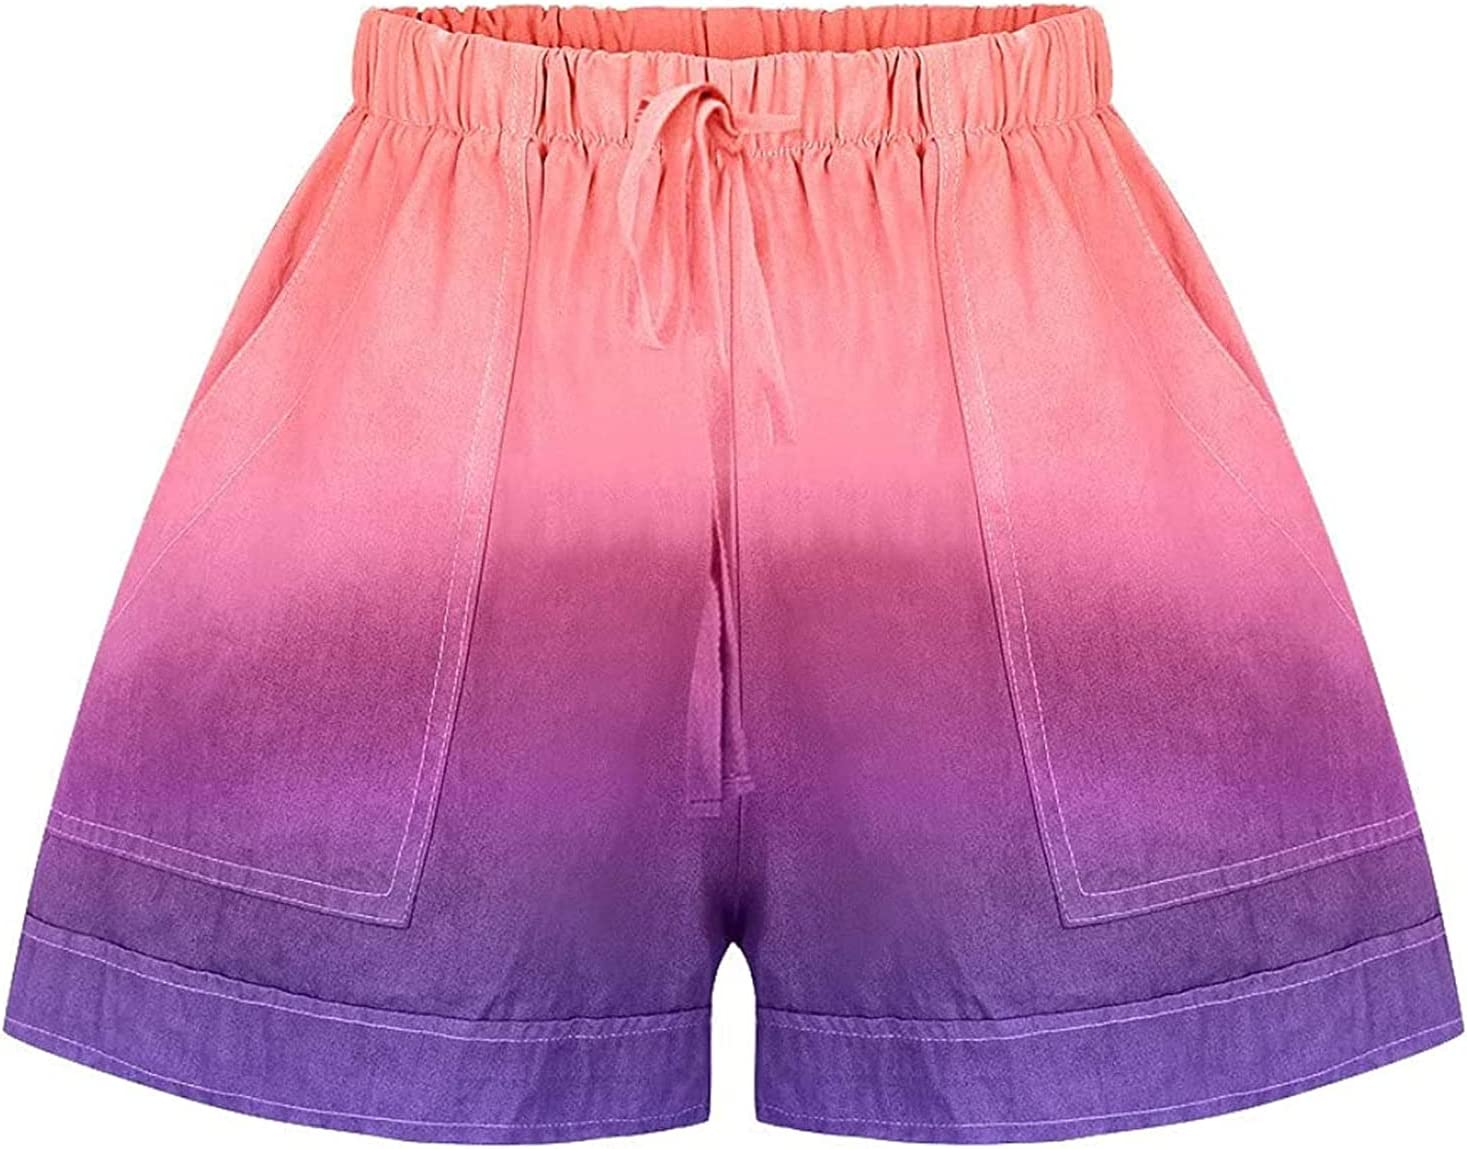 Elastic Waist Tie Dye Shorts for Women Lounge Summer Comfy Color Overseas parallel import low-pricing regular item